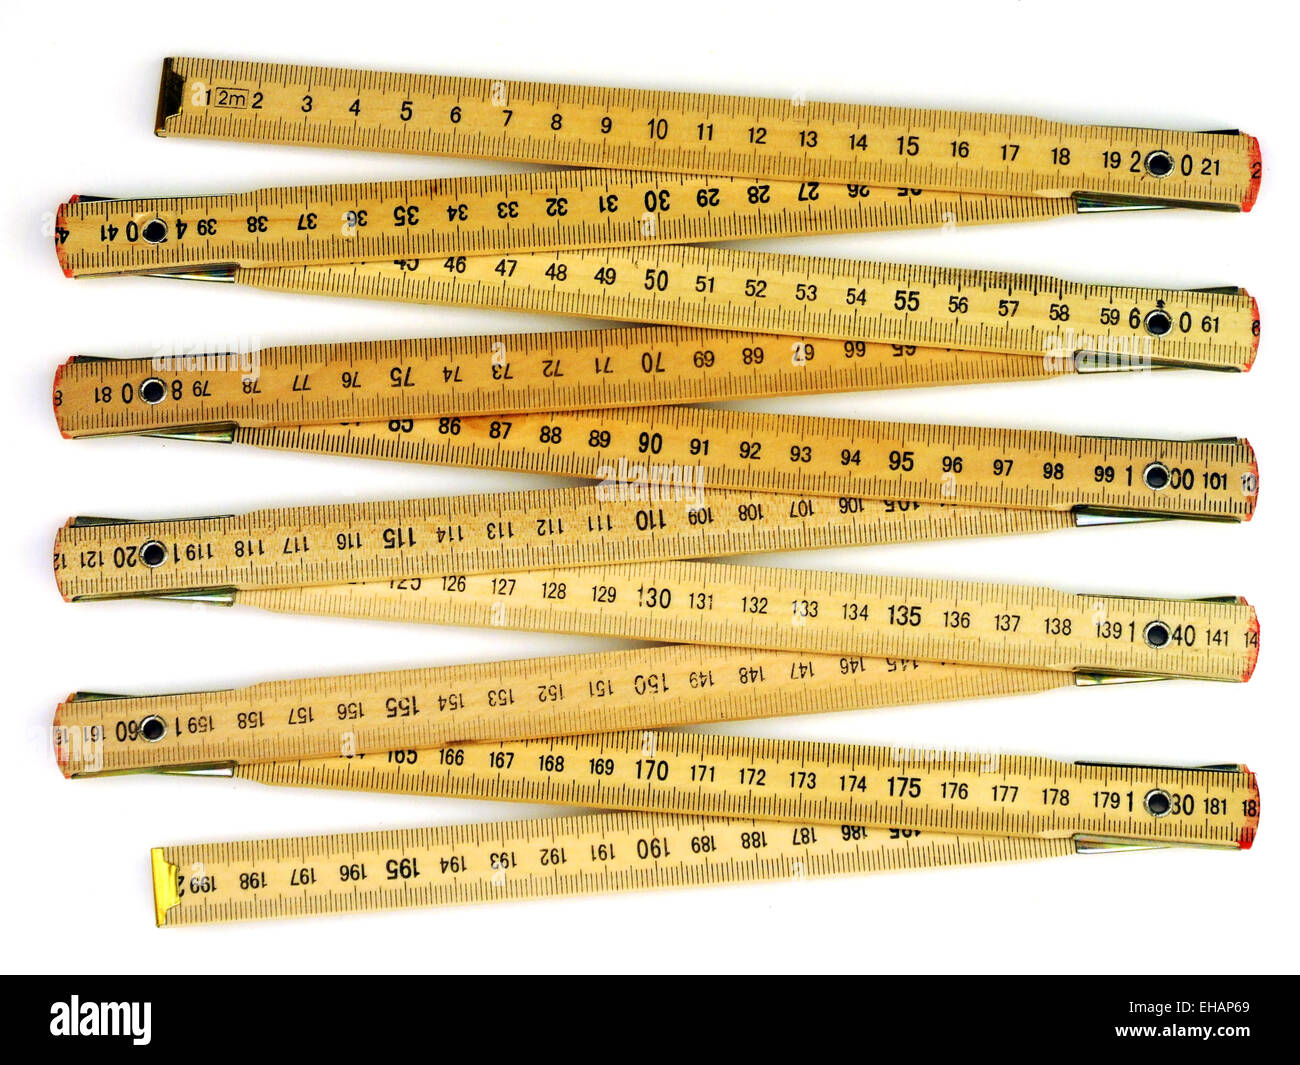 Zollstock / folding meter stick - Stock Image